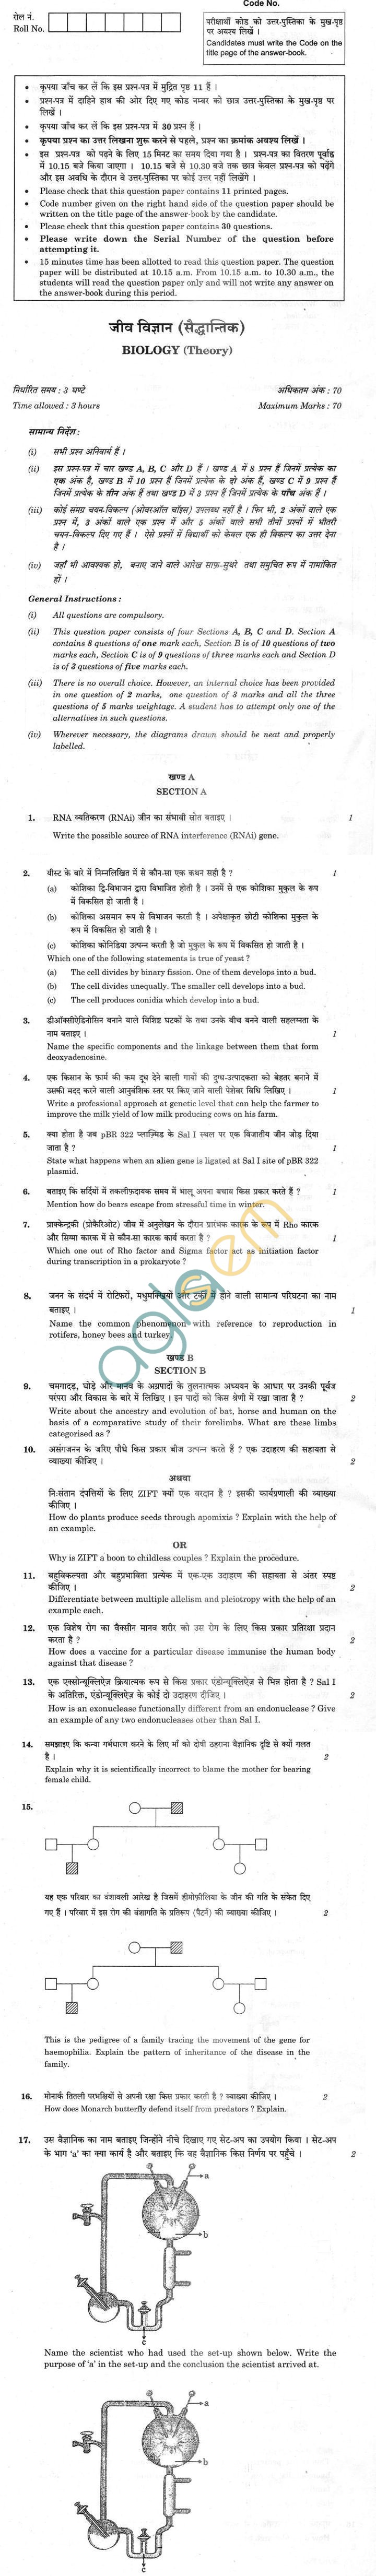 CBSE Compartment Exam 2013 Class XII Question Paper - Biology